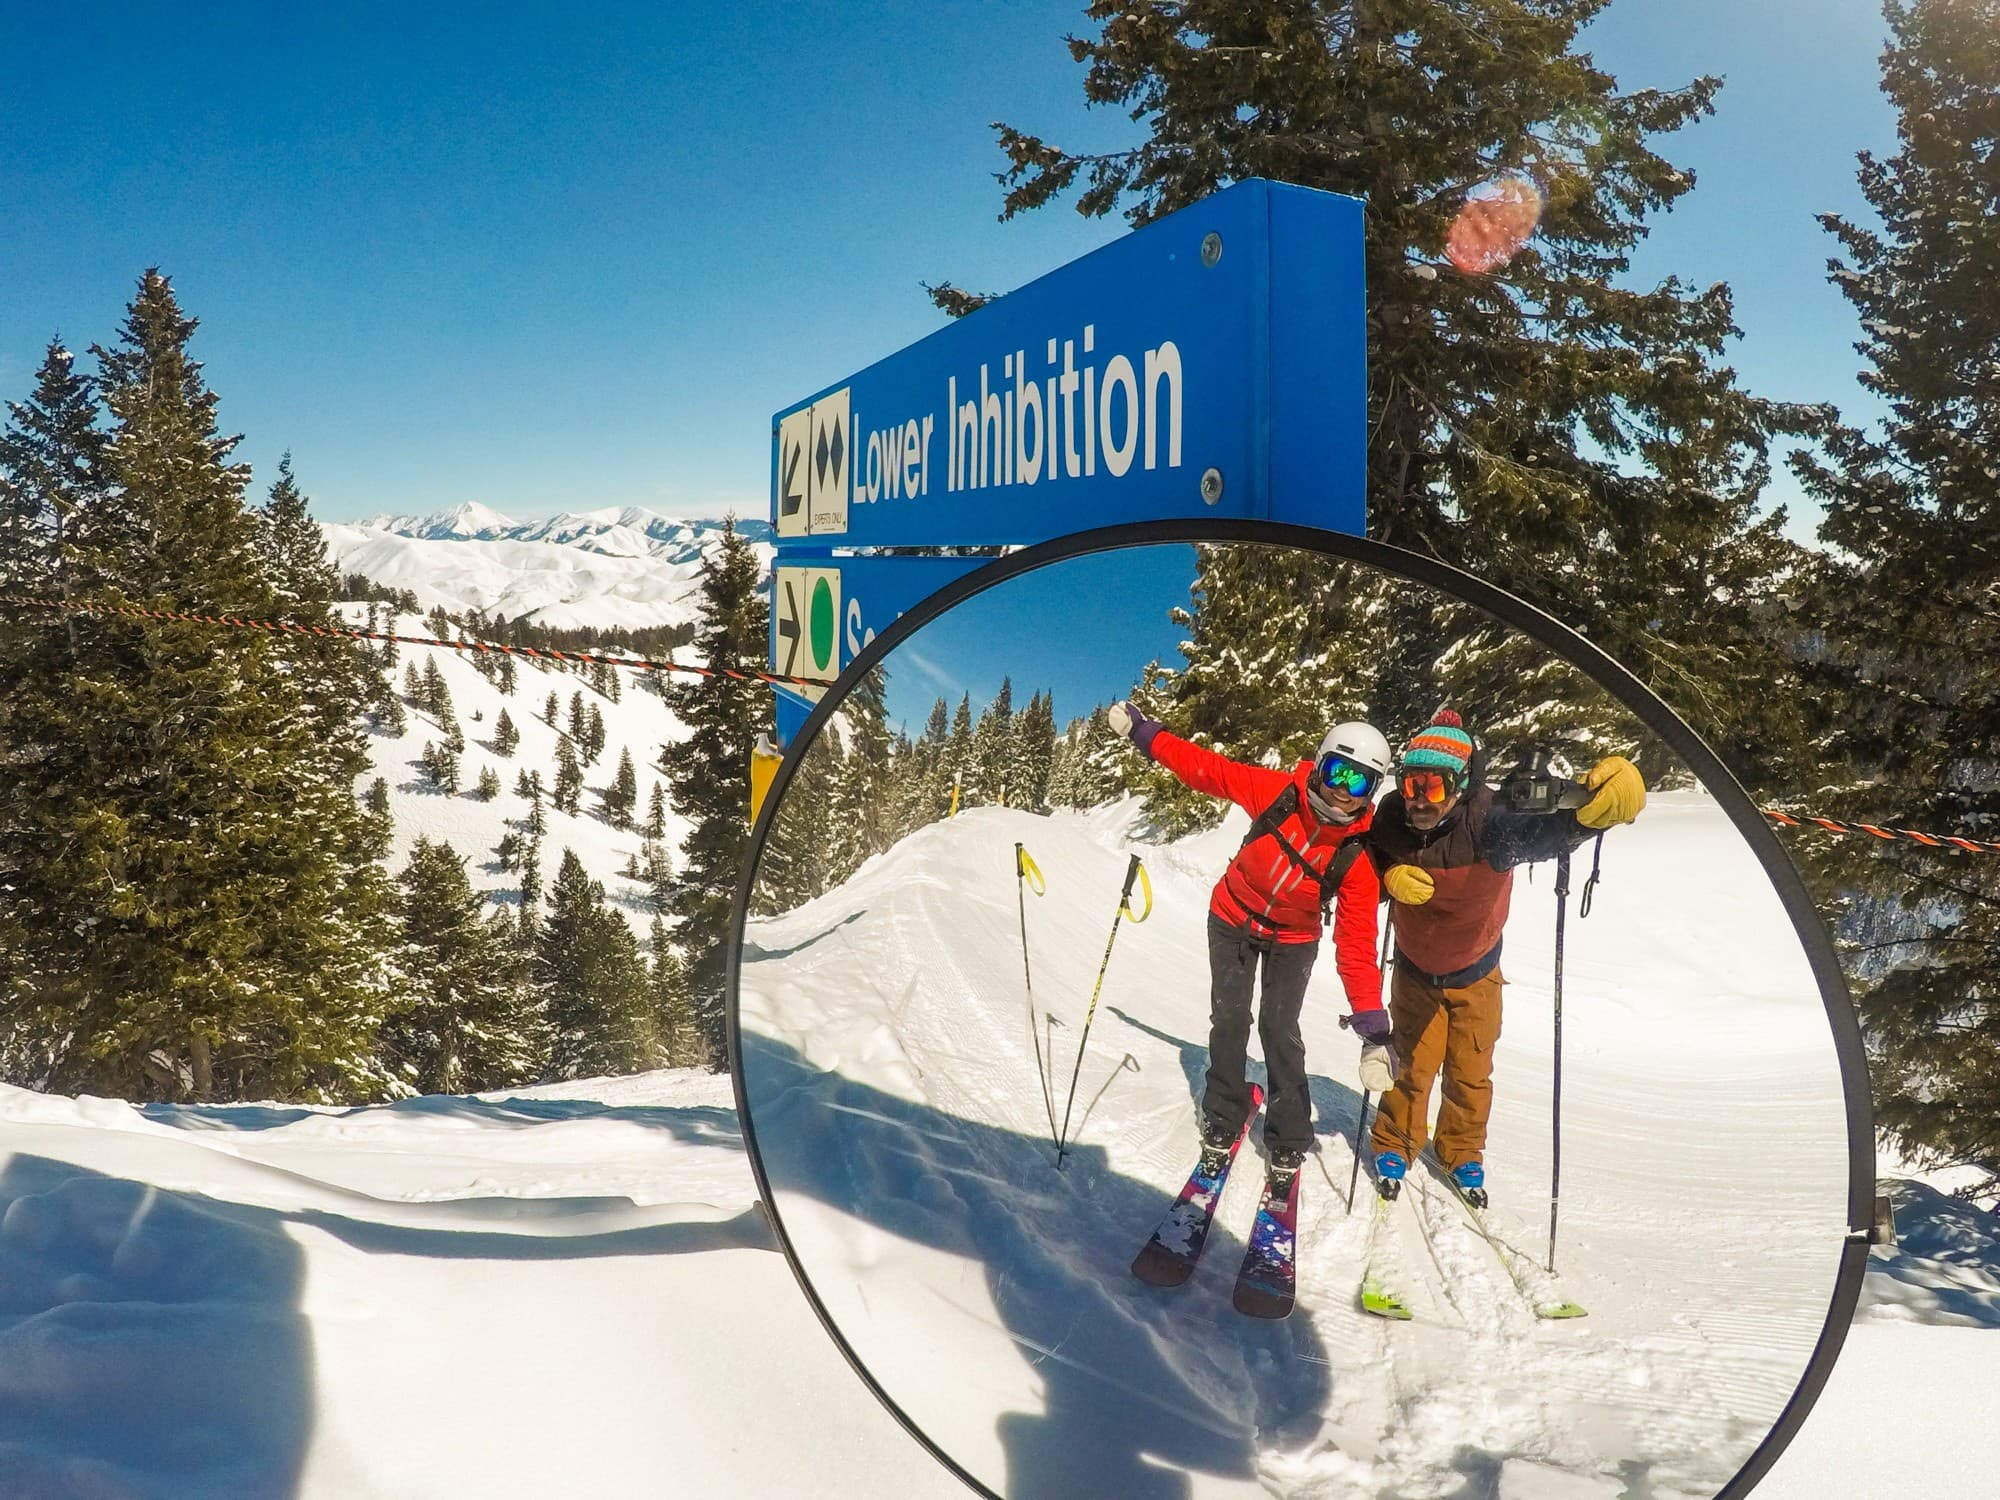 Sun Valley // Check out this 7-day Mountain Collective road trip itinerary that includes 2 days of skiing at Alta-Snowbird, Jackson Hole & Sun Valley, plus recommendations for where to stay & eat on your vacation.